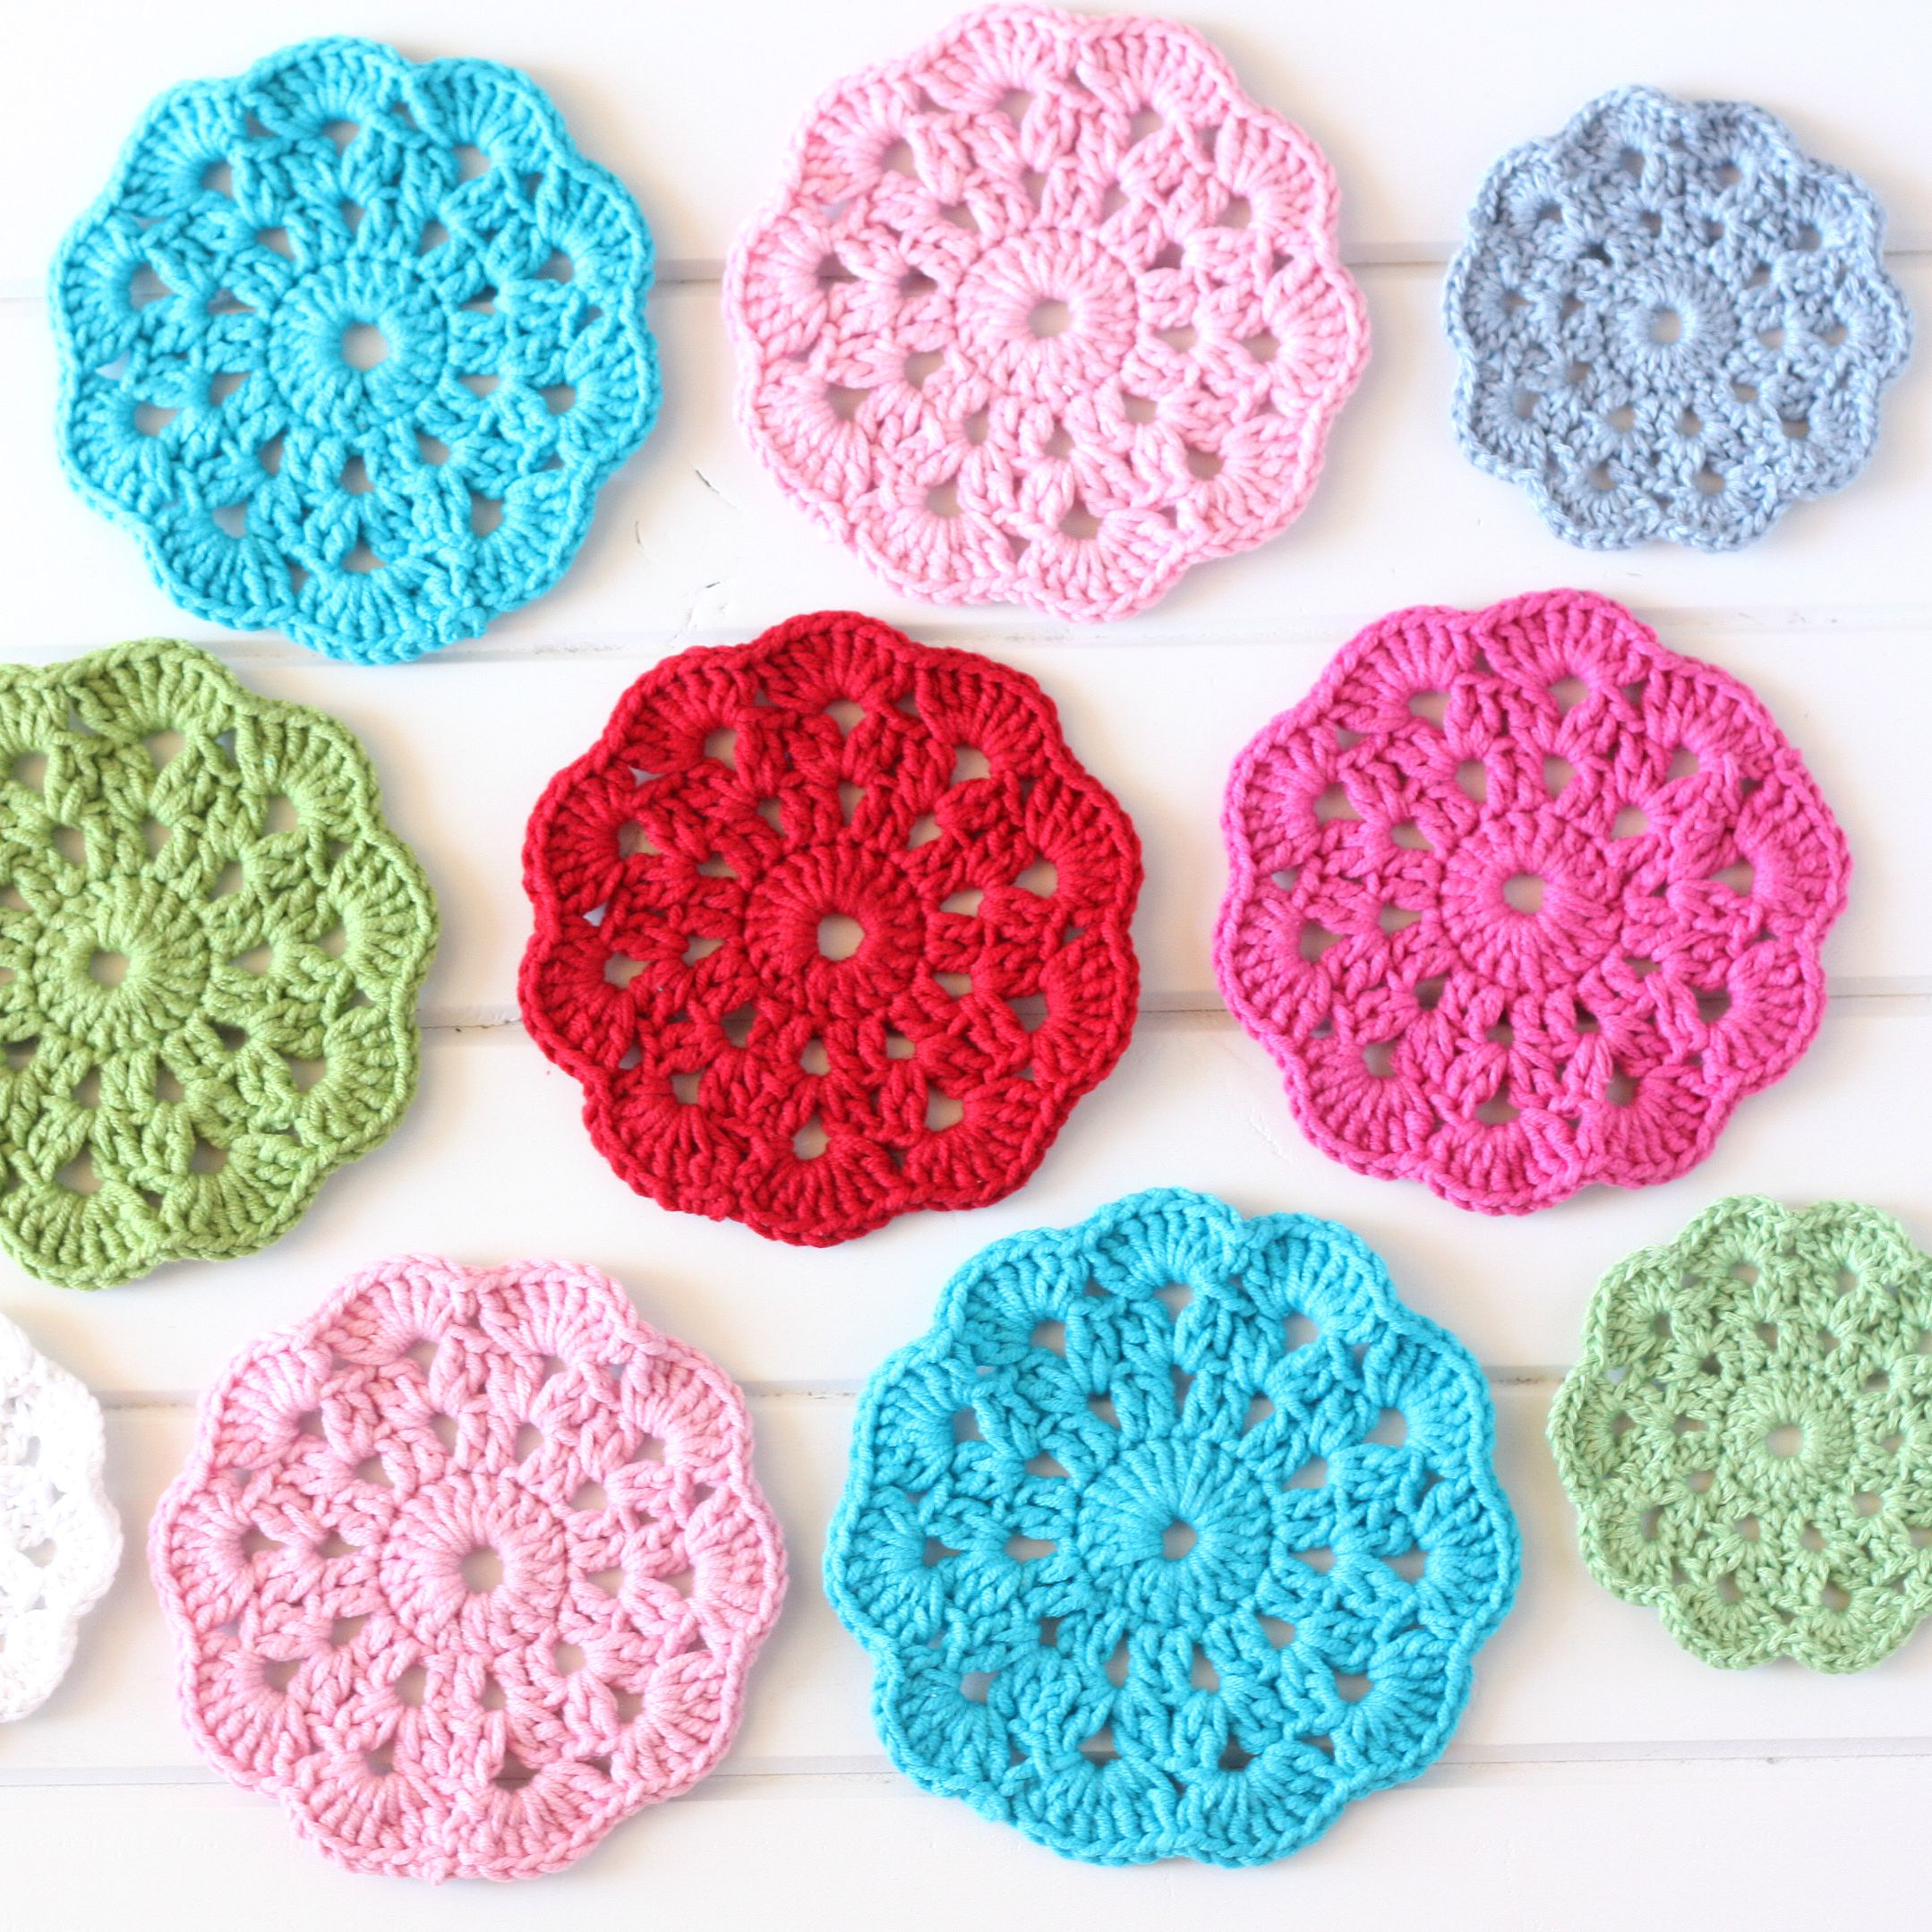 Crochet coasters by A Spoonful of Sugar